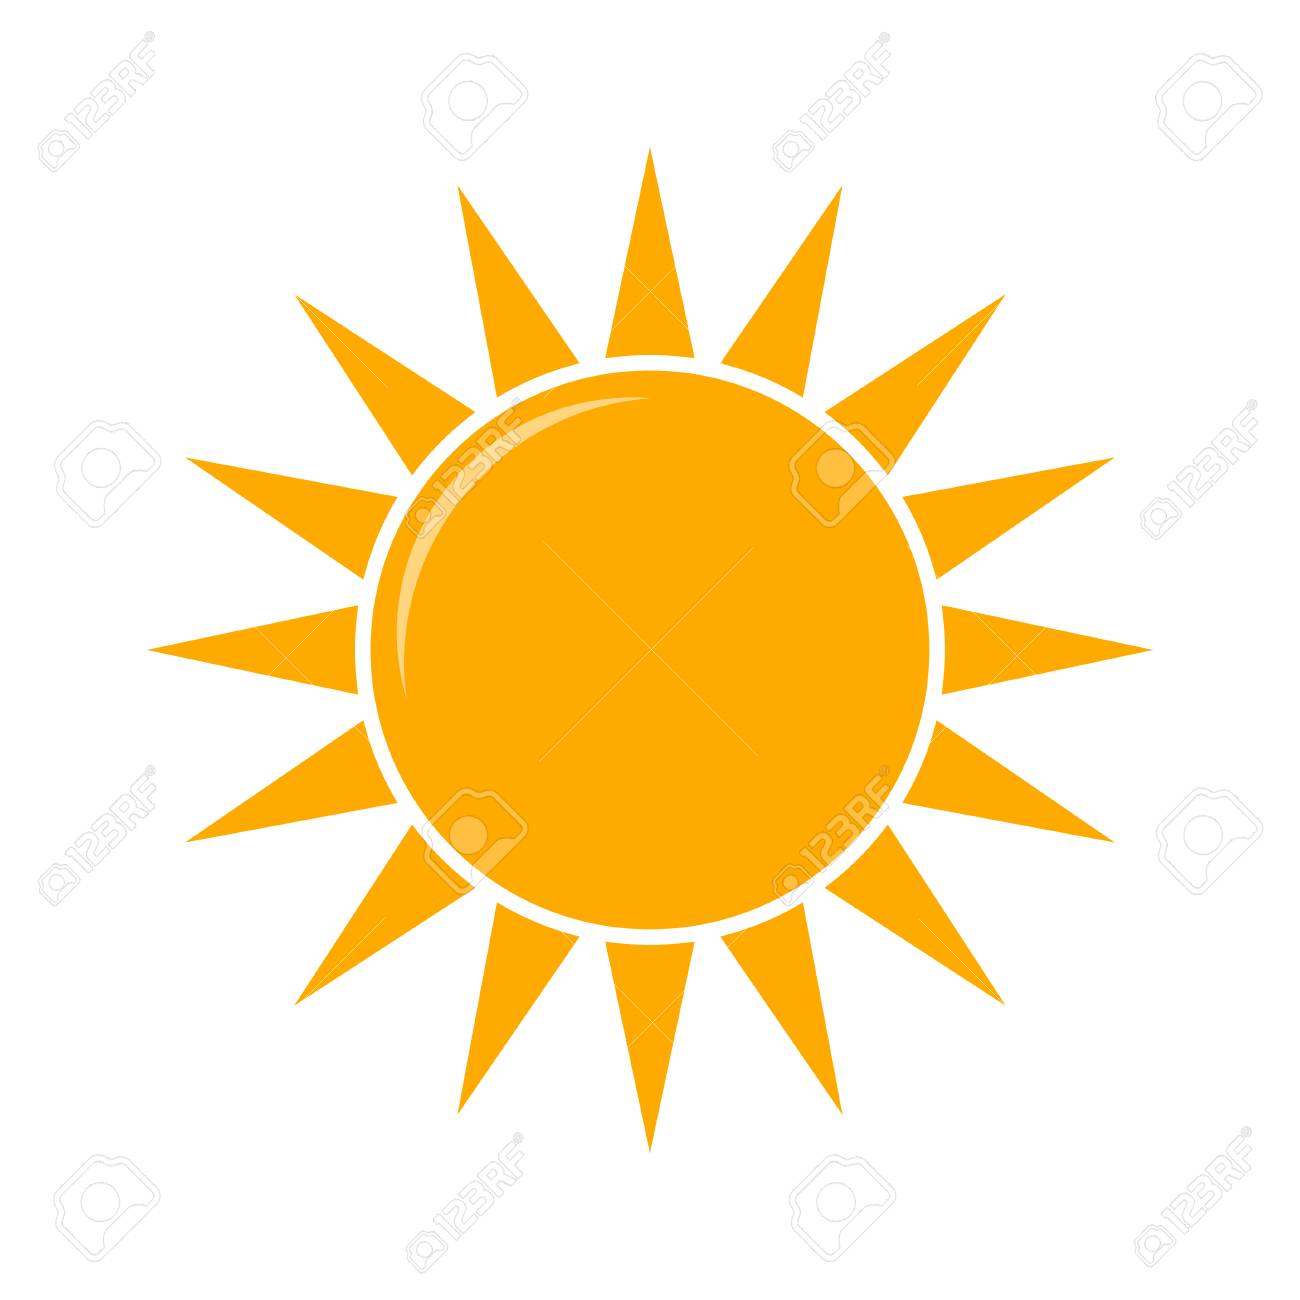 Weather forecast icon, vector. Sunny weather vector illustration - 123611402